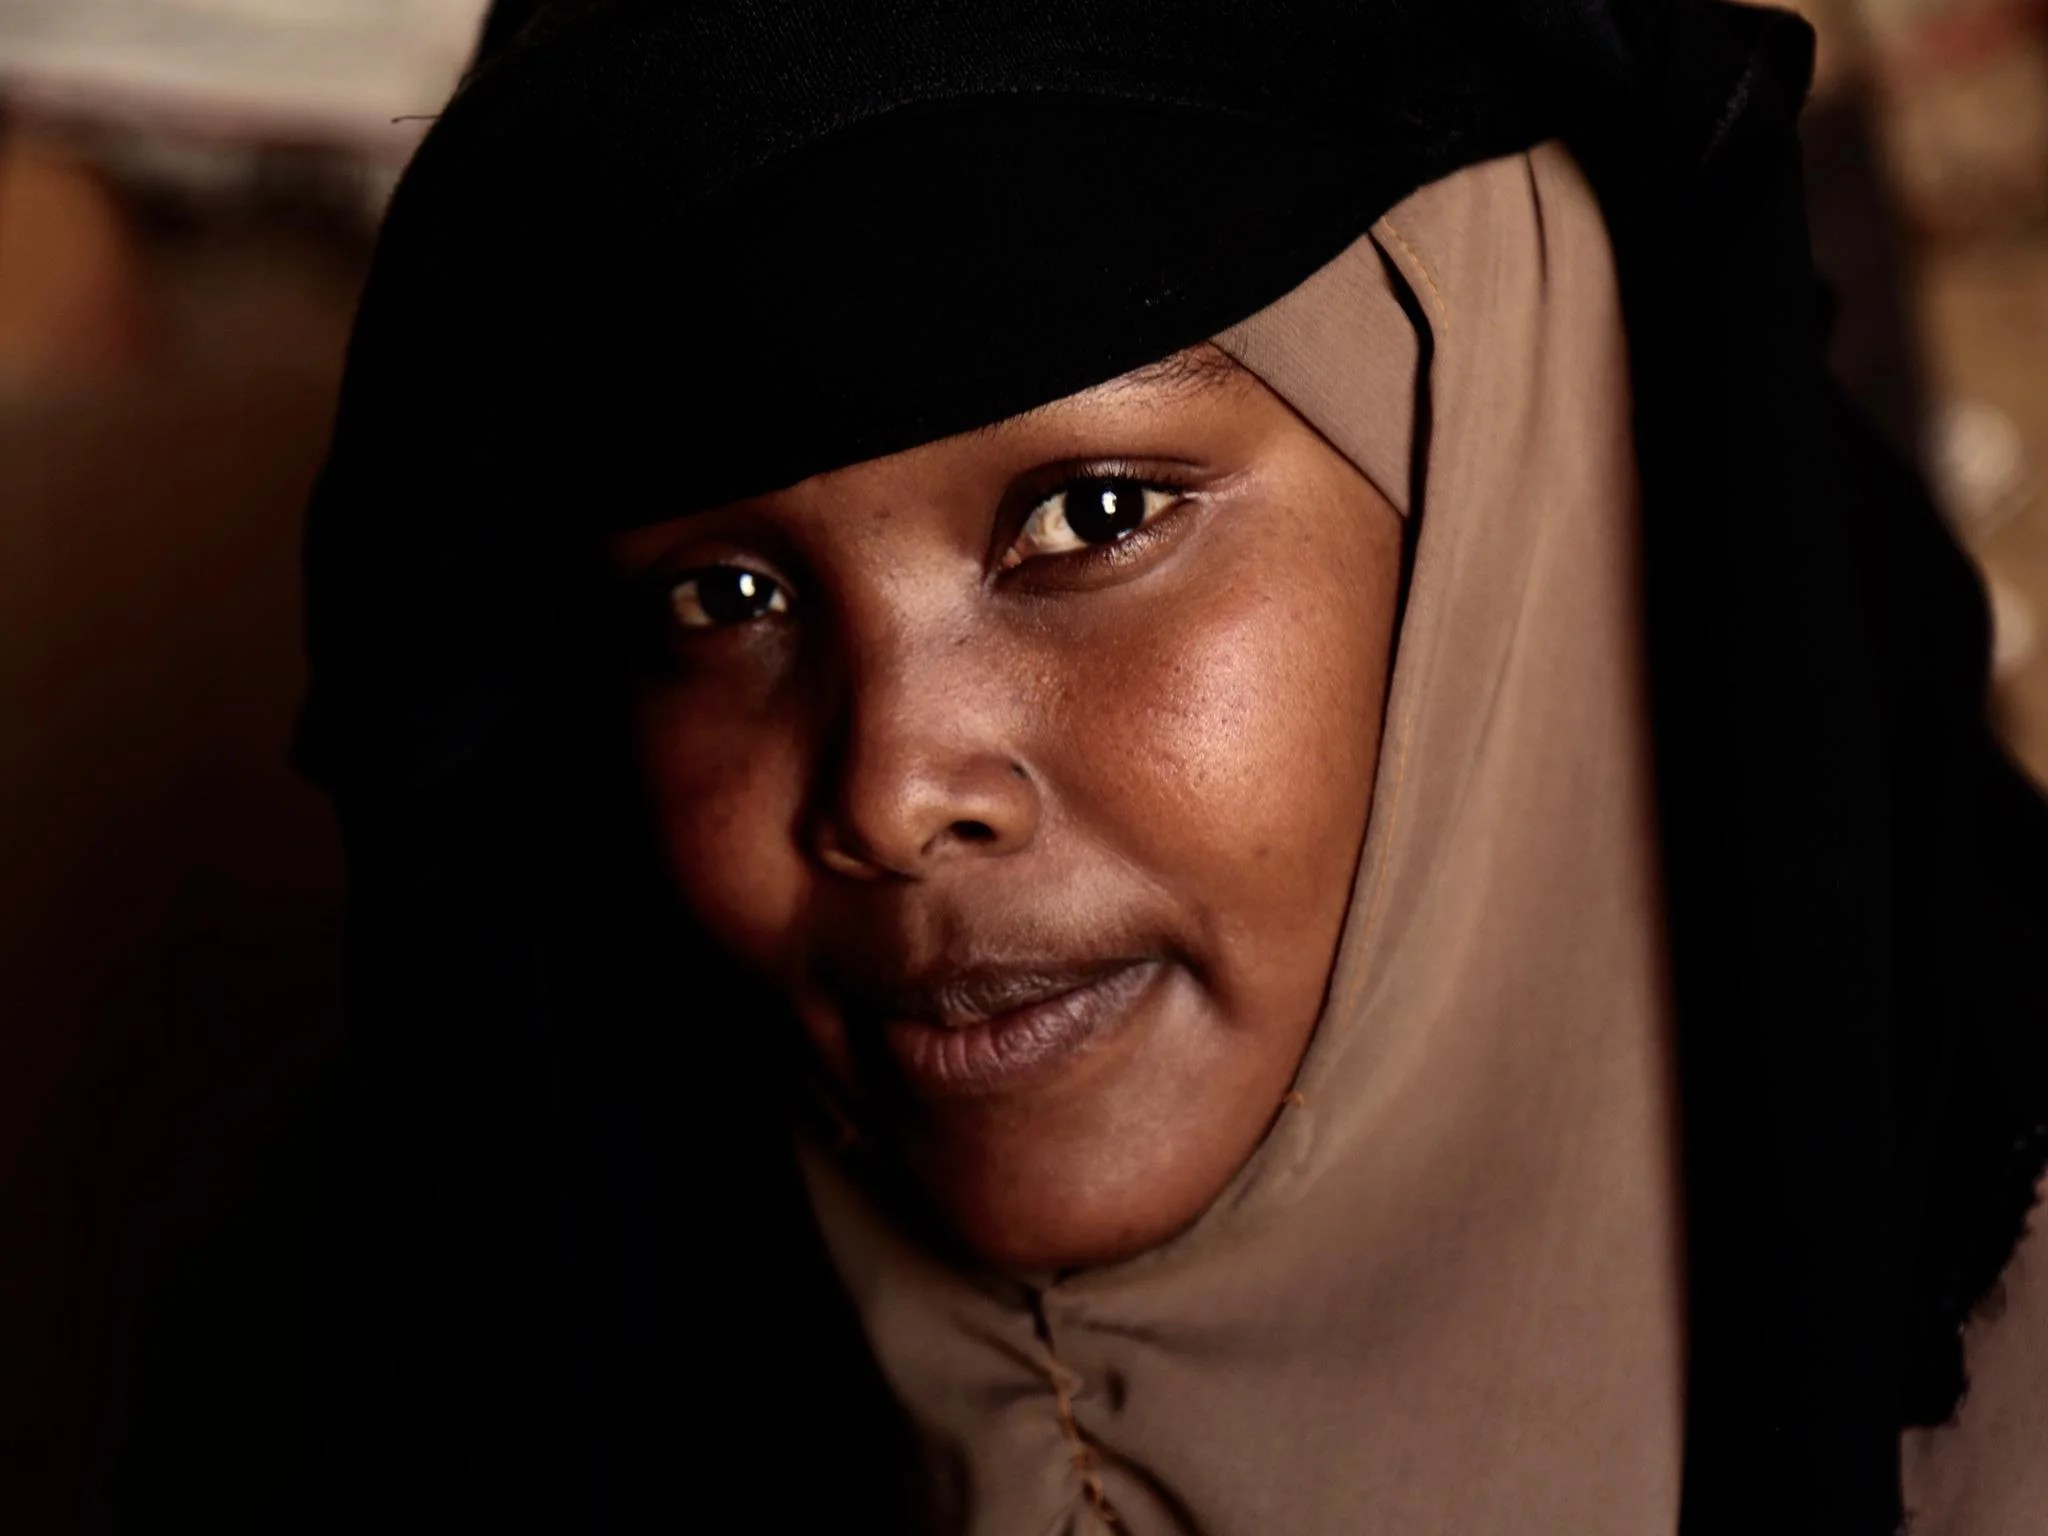 In Somaliland women are being raped as a result of